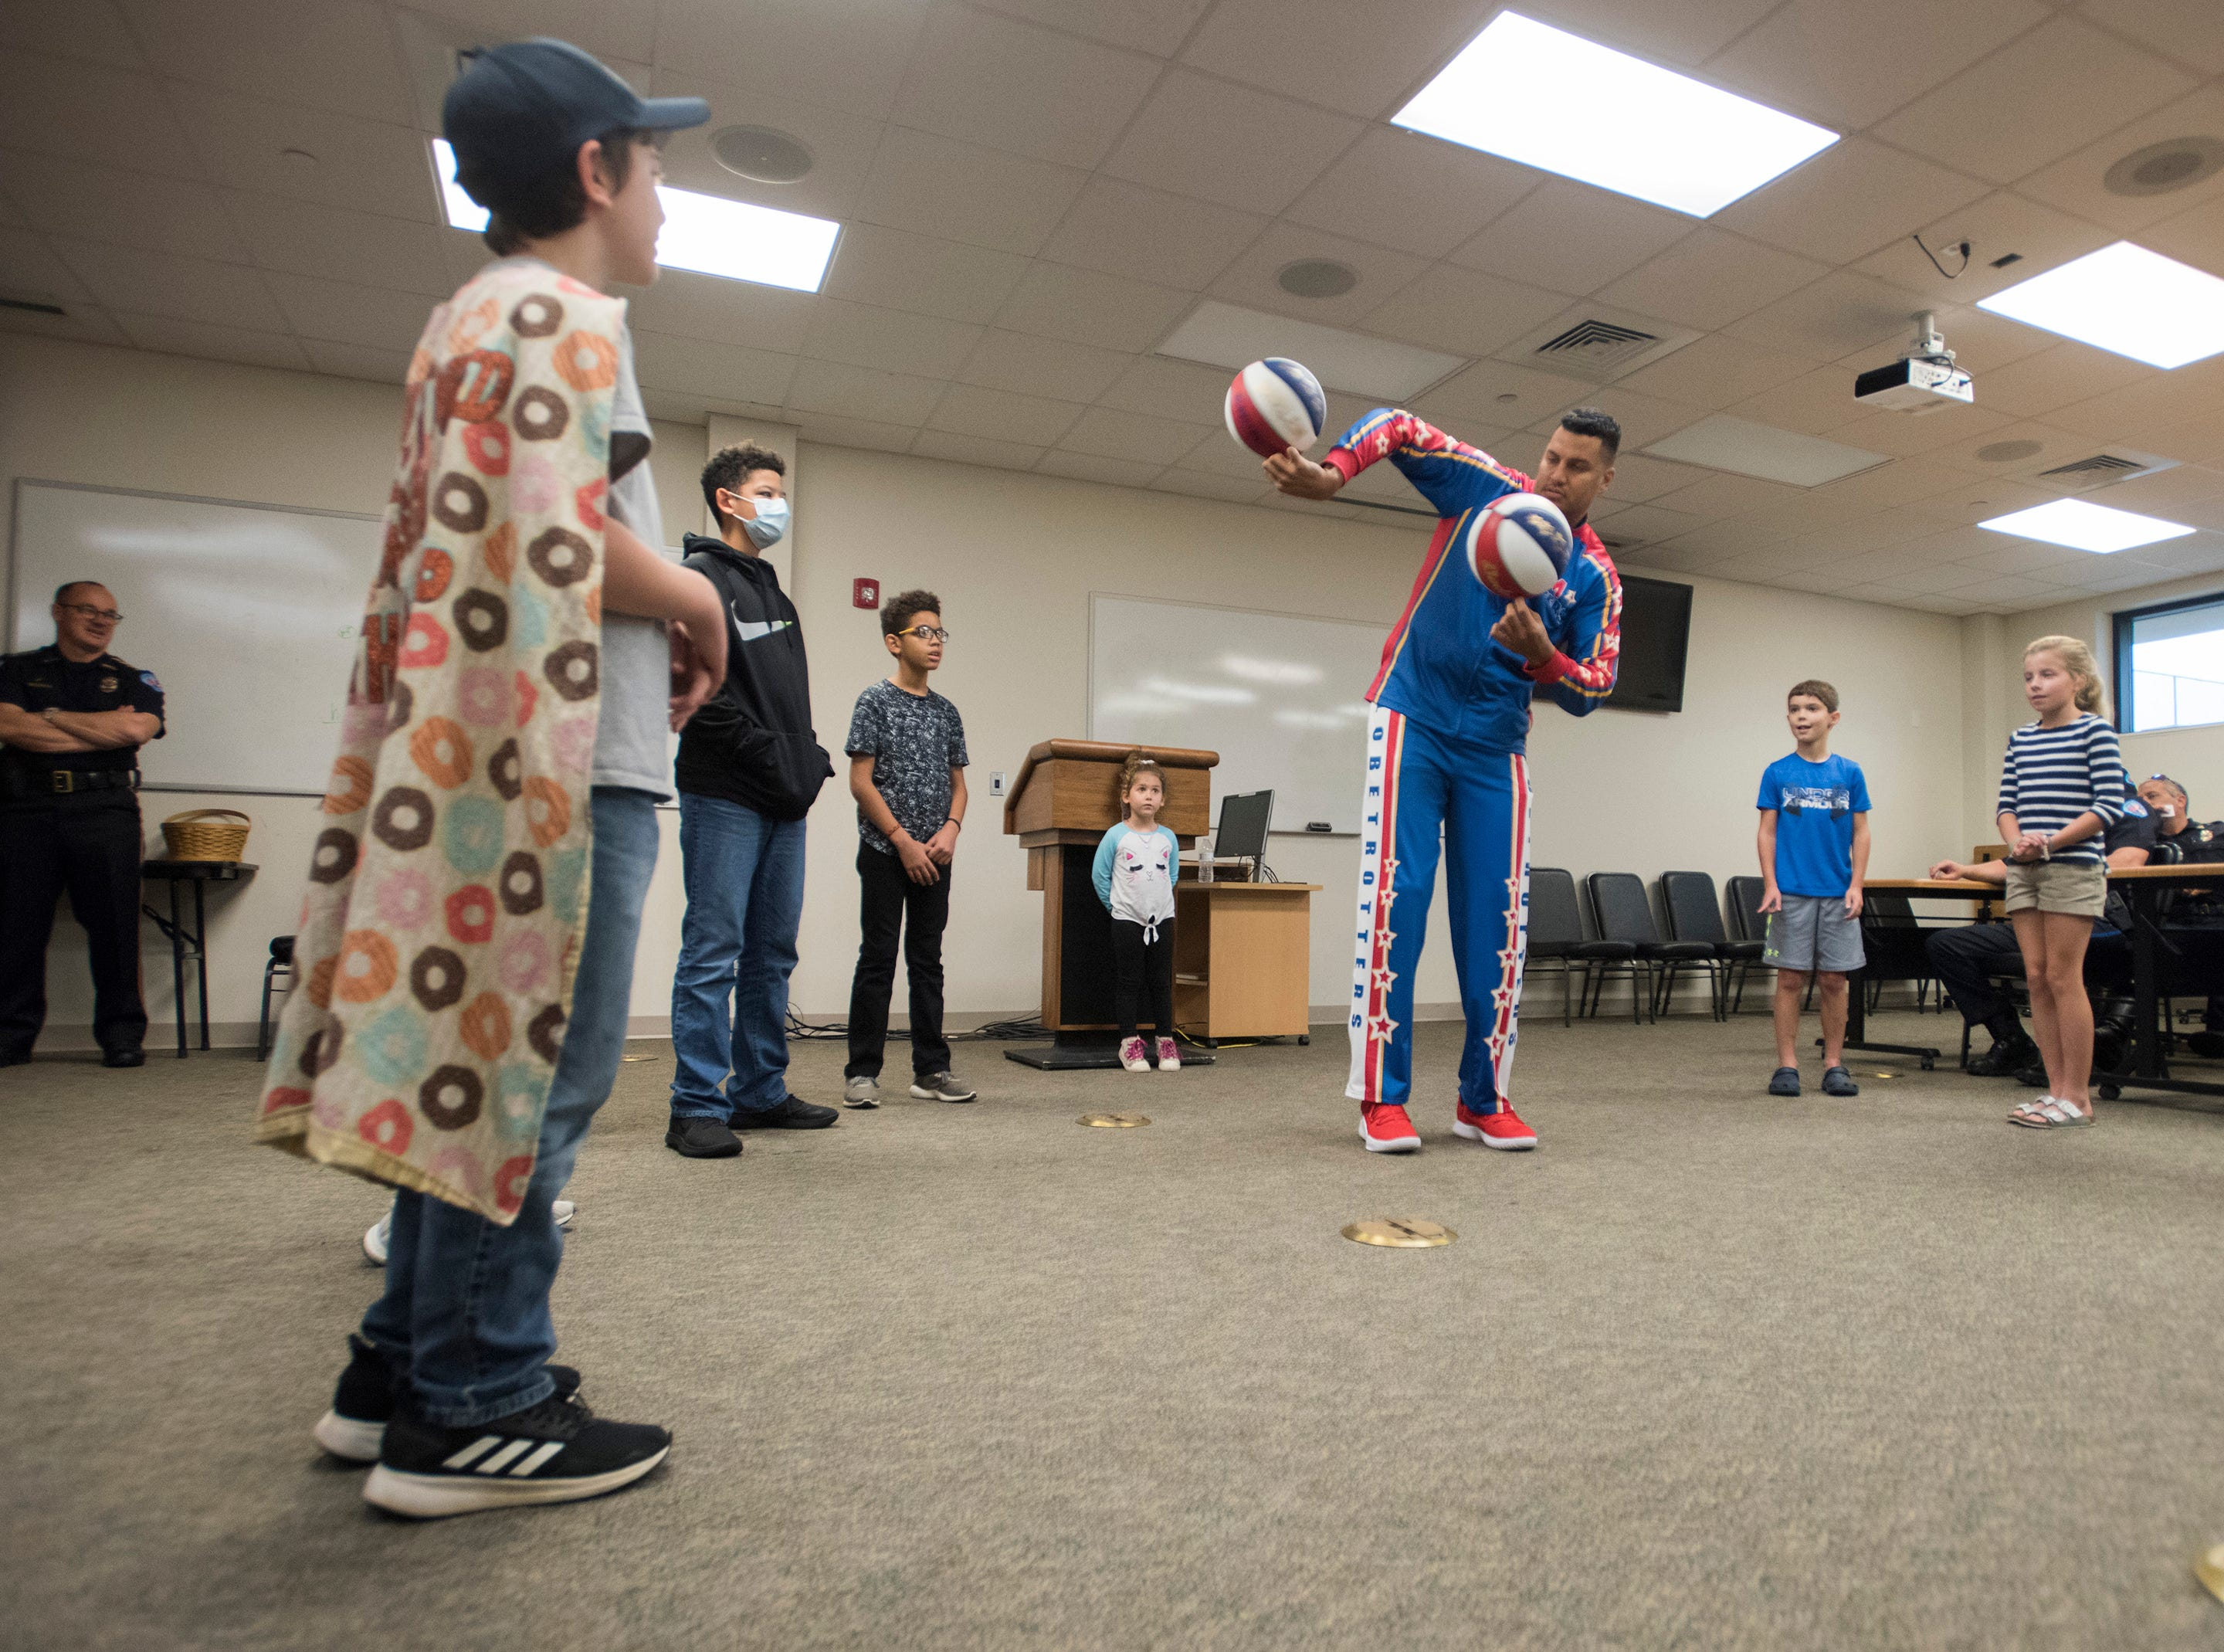 "El Gato Melendez, a member of the Harlem Globetrotters, performs a few tricks as Tyler Carach, left, and a group of children look on during a birthday party for the 11-year old at the Pensacola Police Dept. on Wednesday, Nov. 7, 2018. Carach is also known as the ""donut boy"" and has delivered more than 70,000 of the pastries to law enforcement officersaround the country."